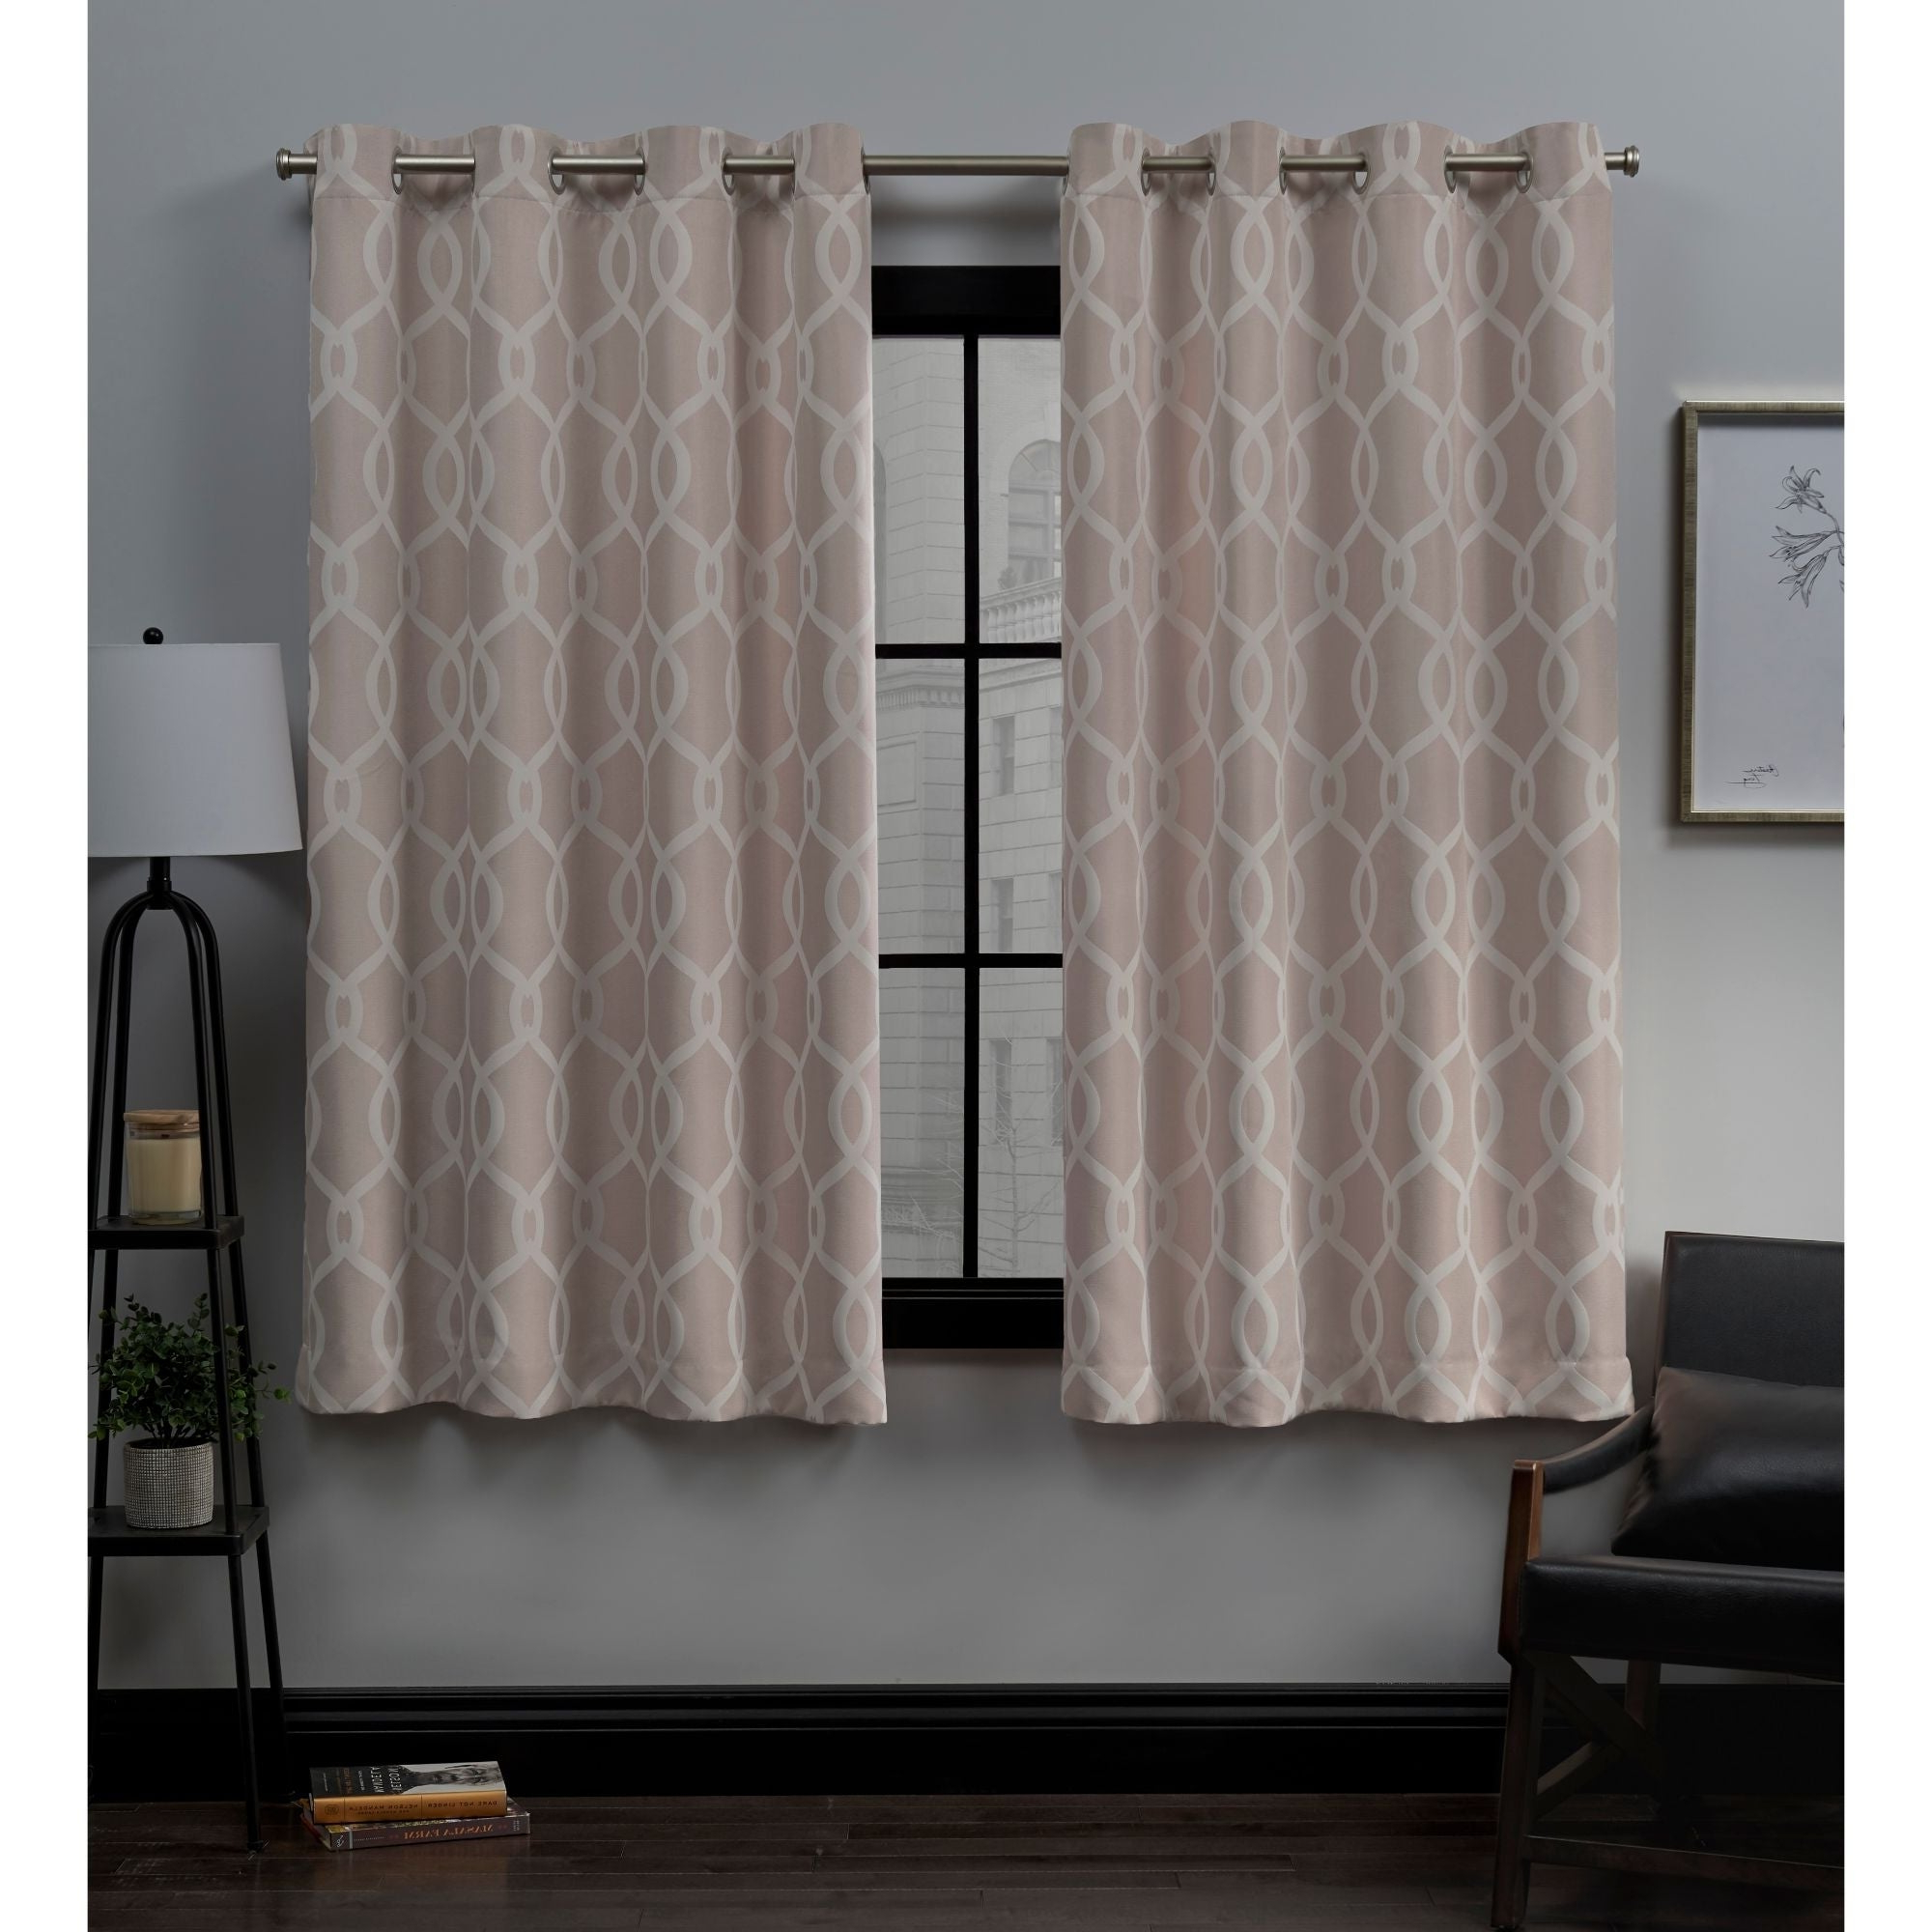 Well Liked Ati Home Trilogi Woven Blackout Grommet Top Curtain Panel Pair Intended For Woven Blackout Curtain Panel Pairs With Grommet Top (View 2 of 20)